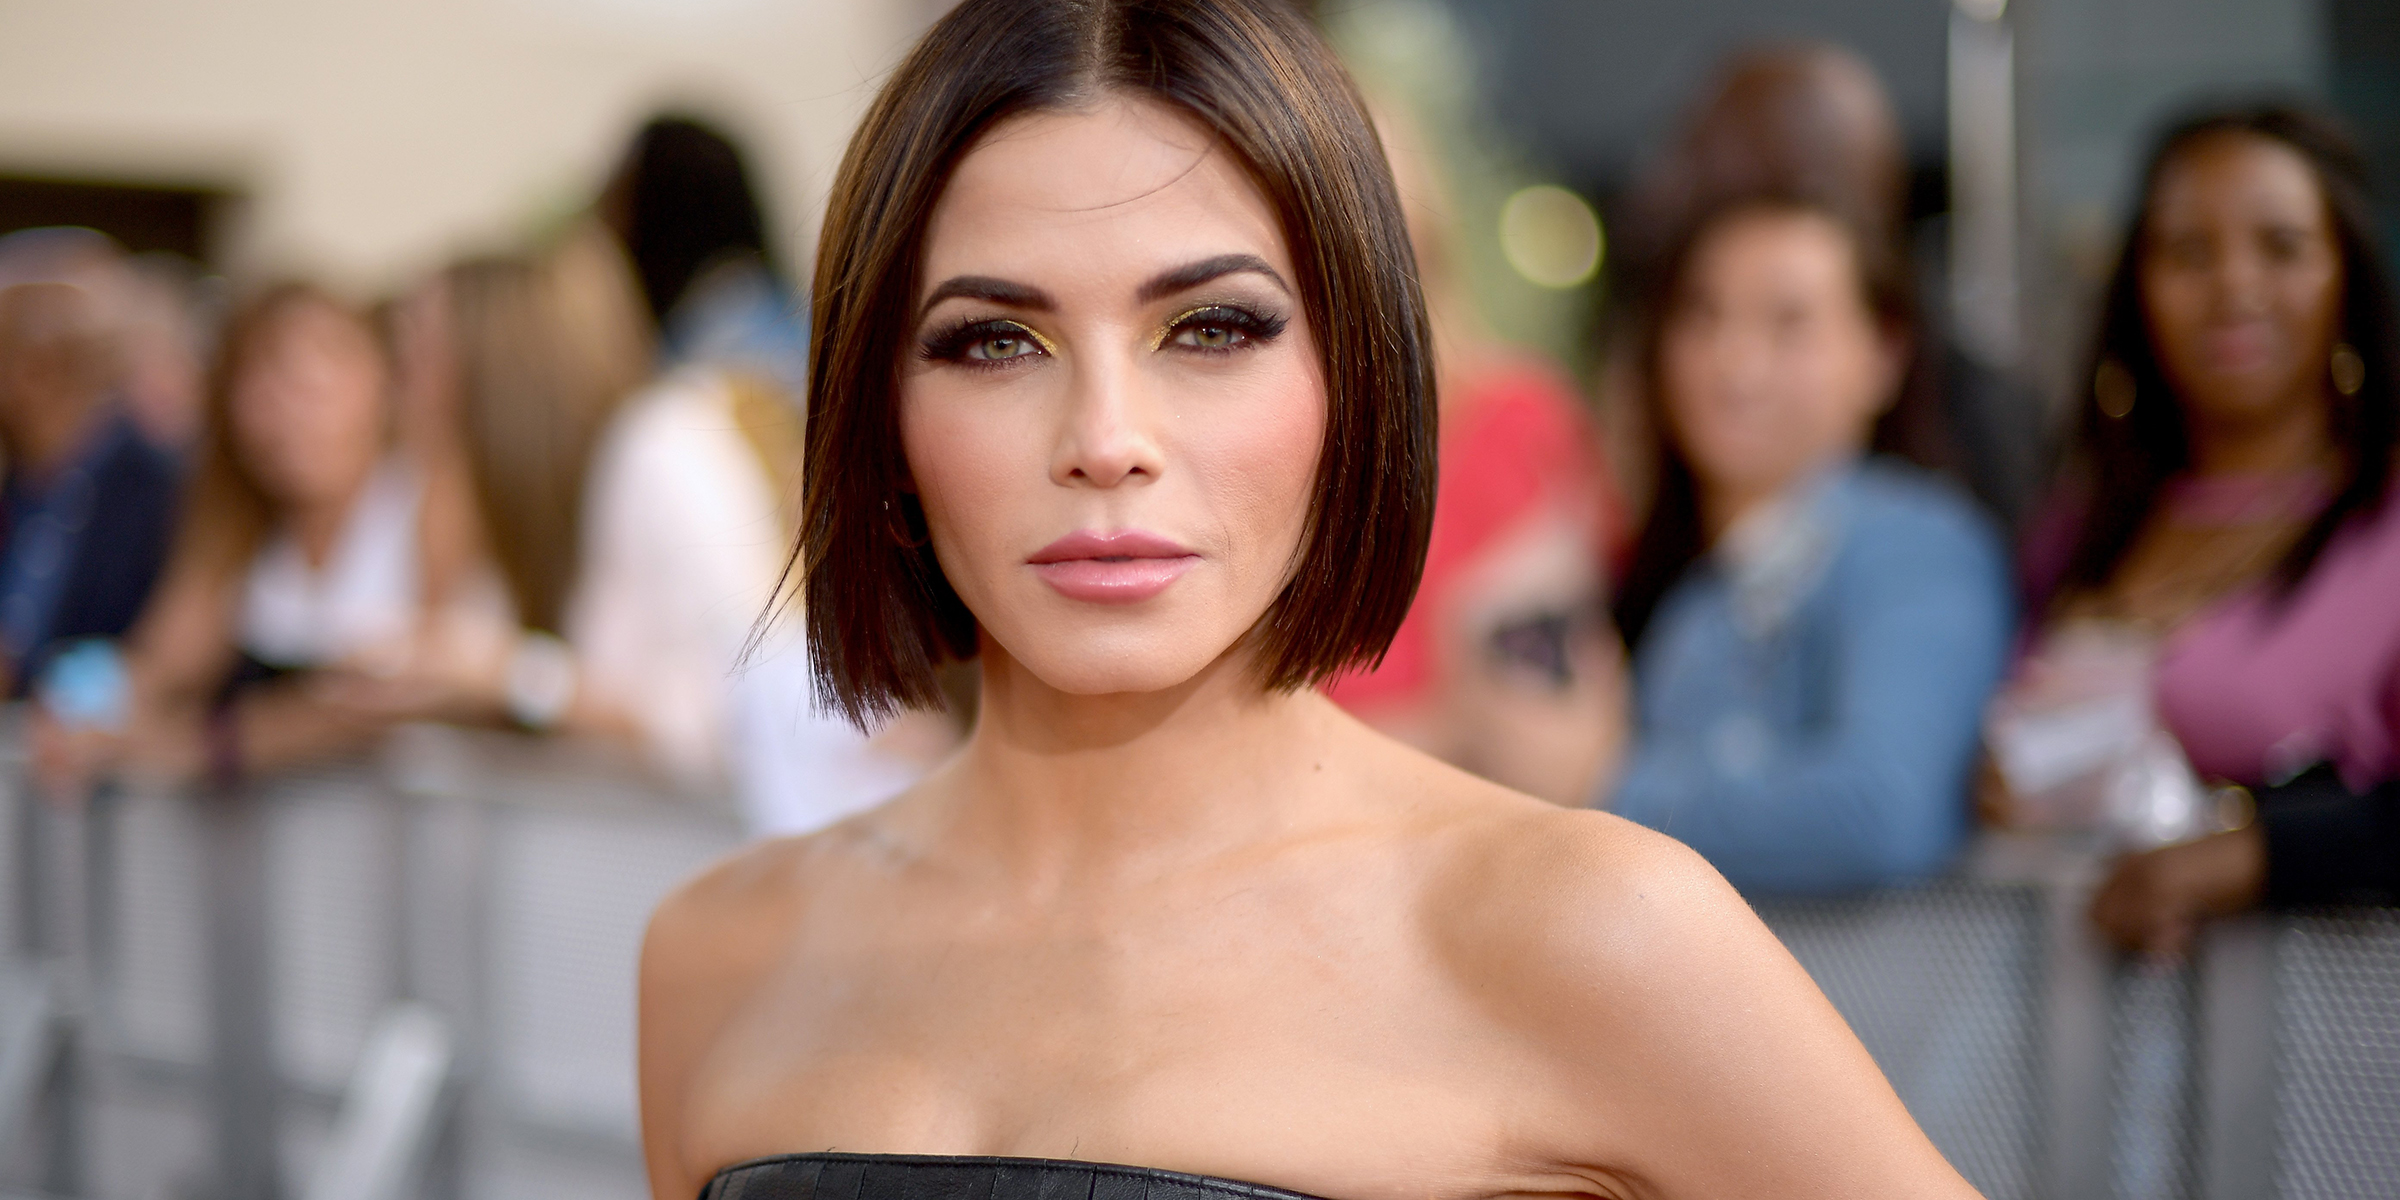 Jenna Dewan opens up about divorce from Channing Tatum